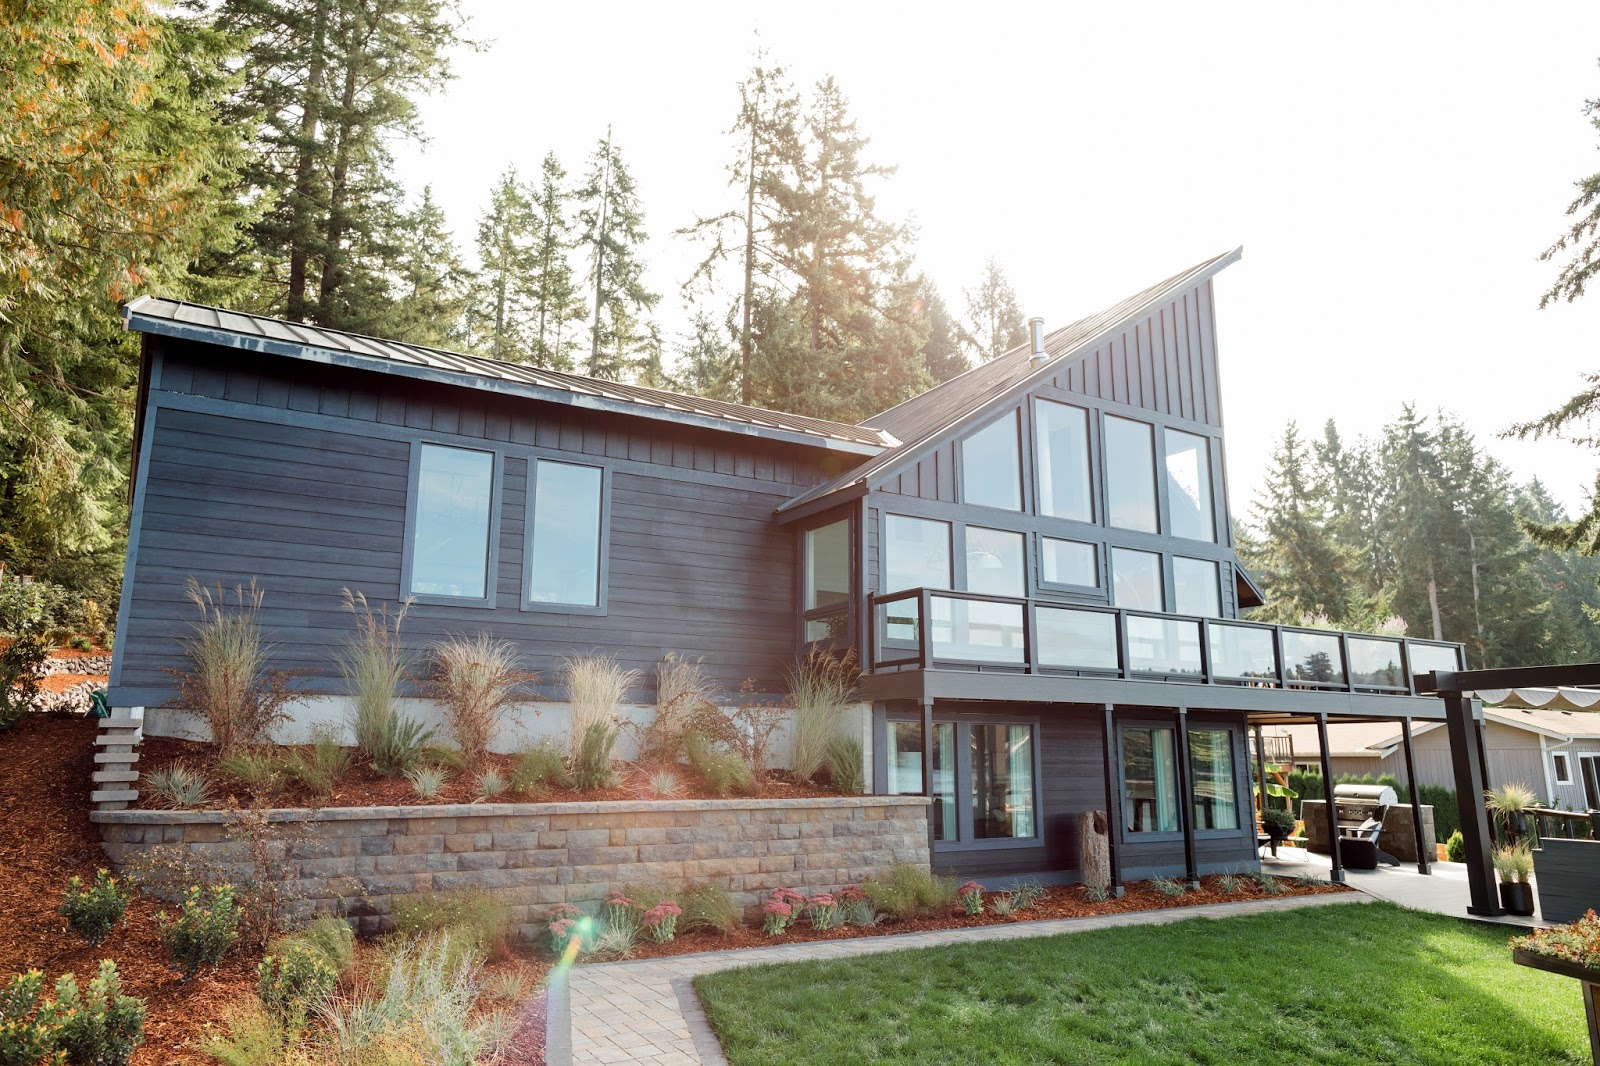 HGTV Dream Home 2018: A Pacific Northwest Oasis